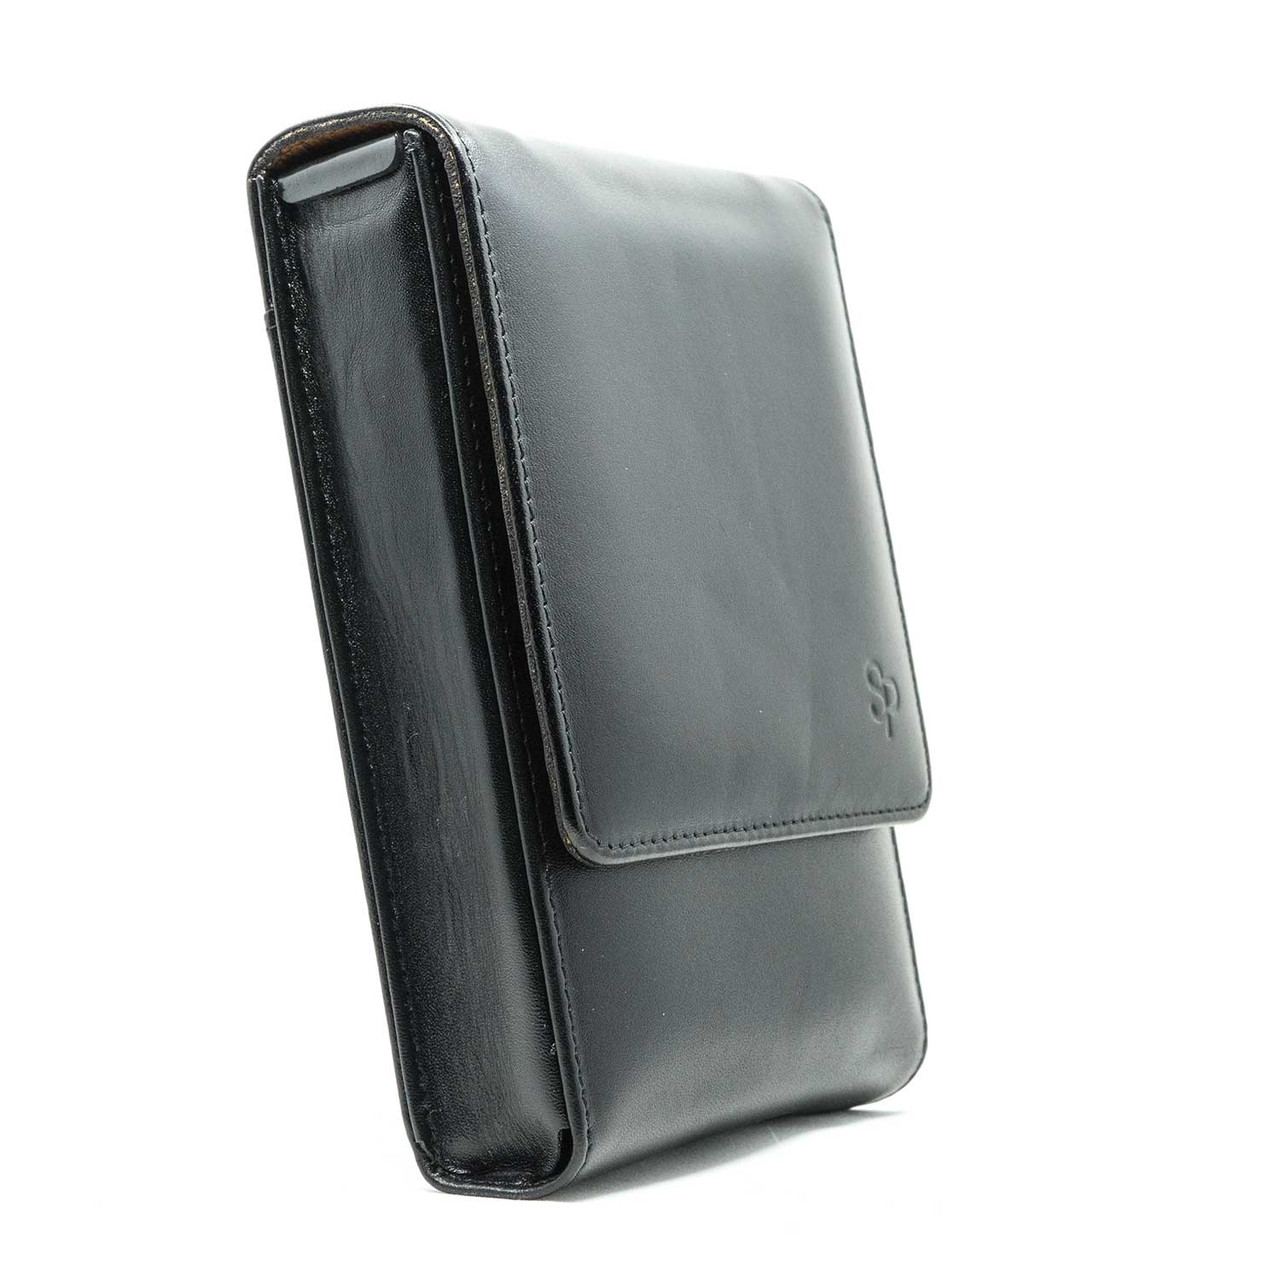 FNS-9C Sneaky Pete Holster (Belt Clip)